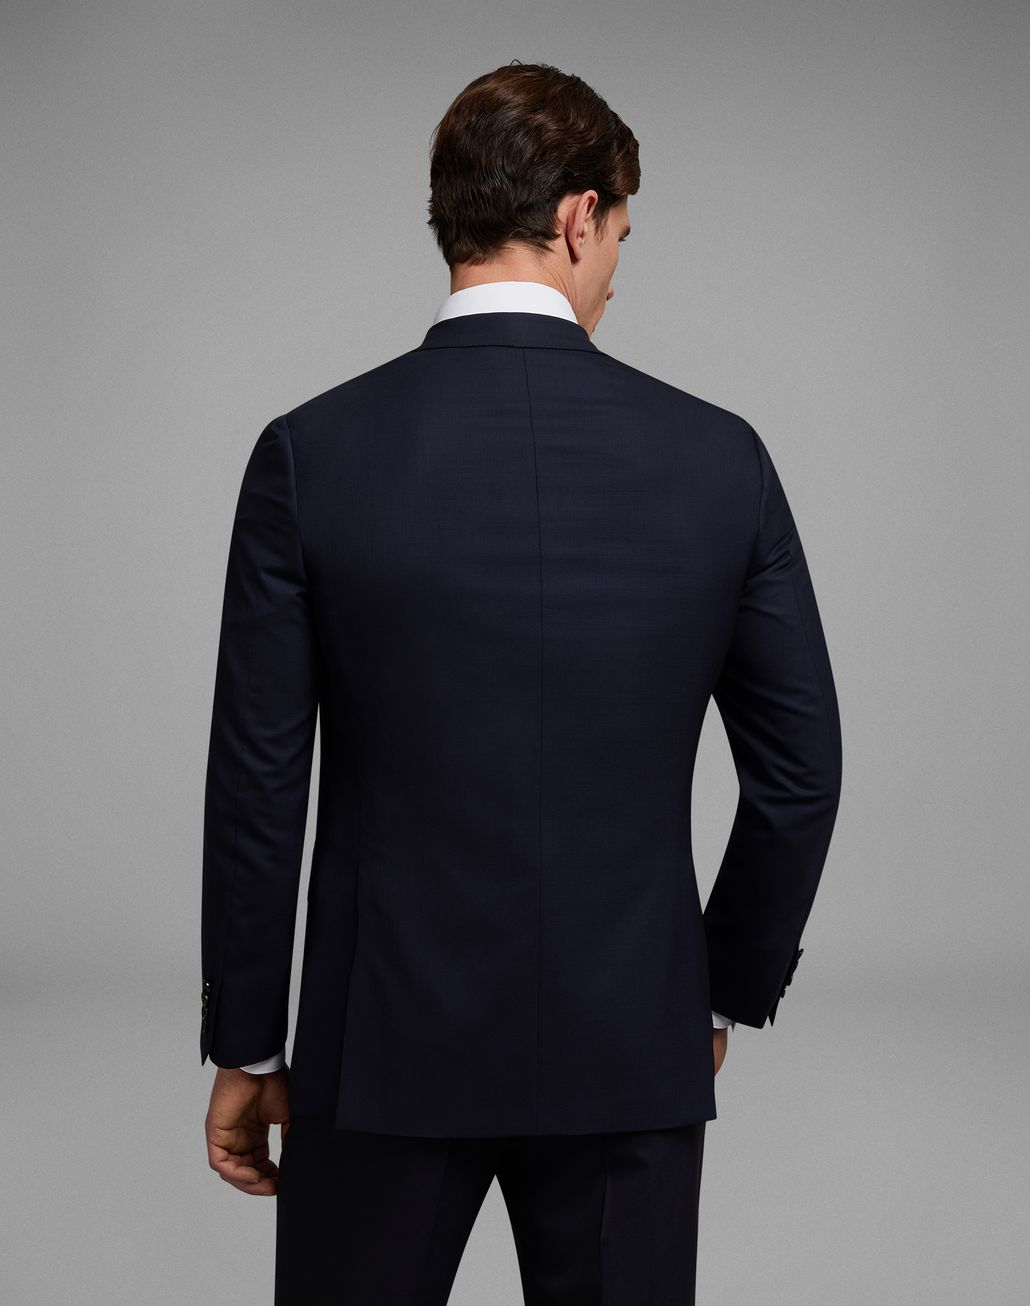 BRIONI 'Essential' Navy Blue Ravello Jacket Jackets Man d